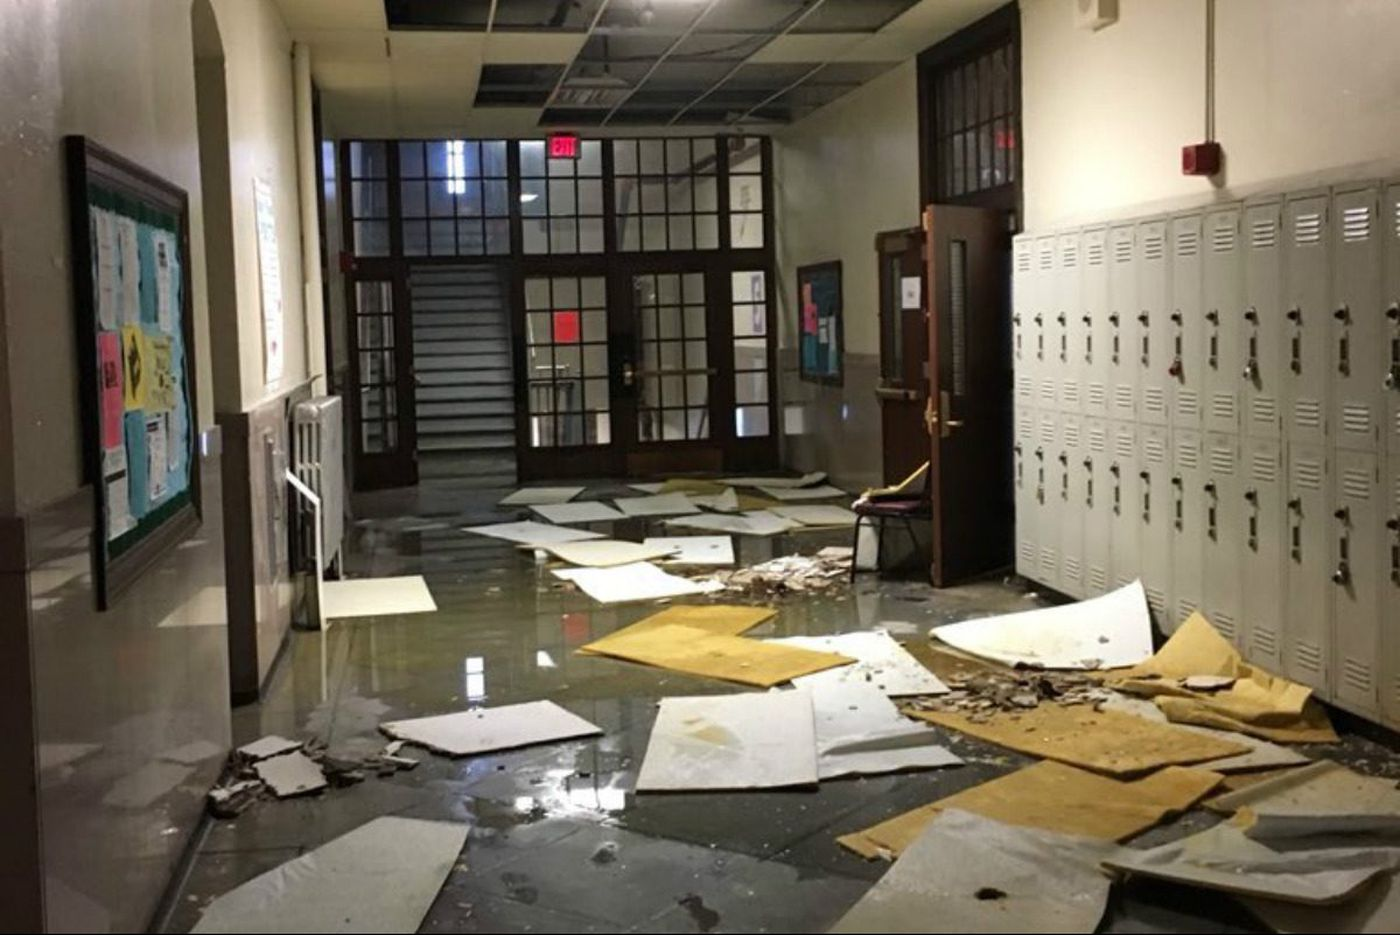 Days of rain cause major flooding, ceiling collapse at a S. Philly HS